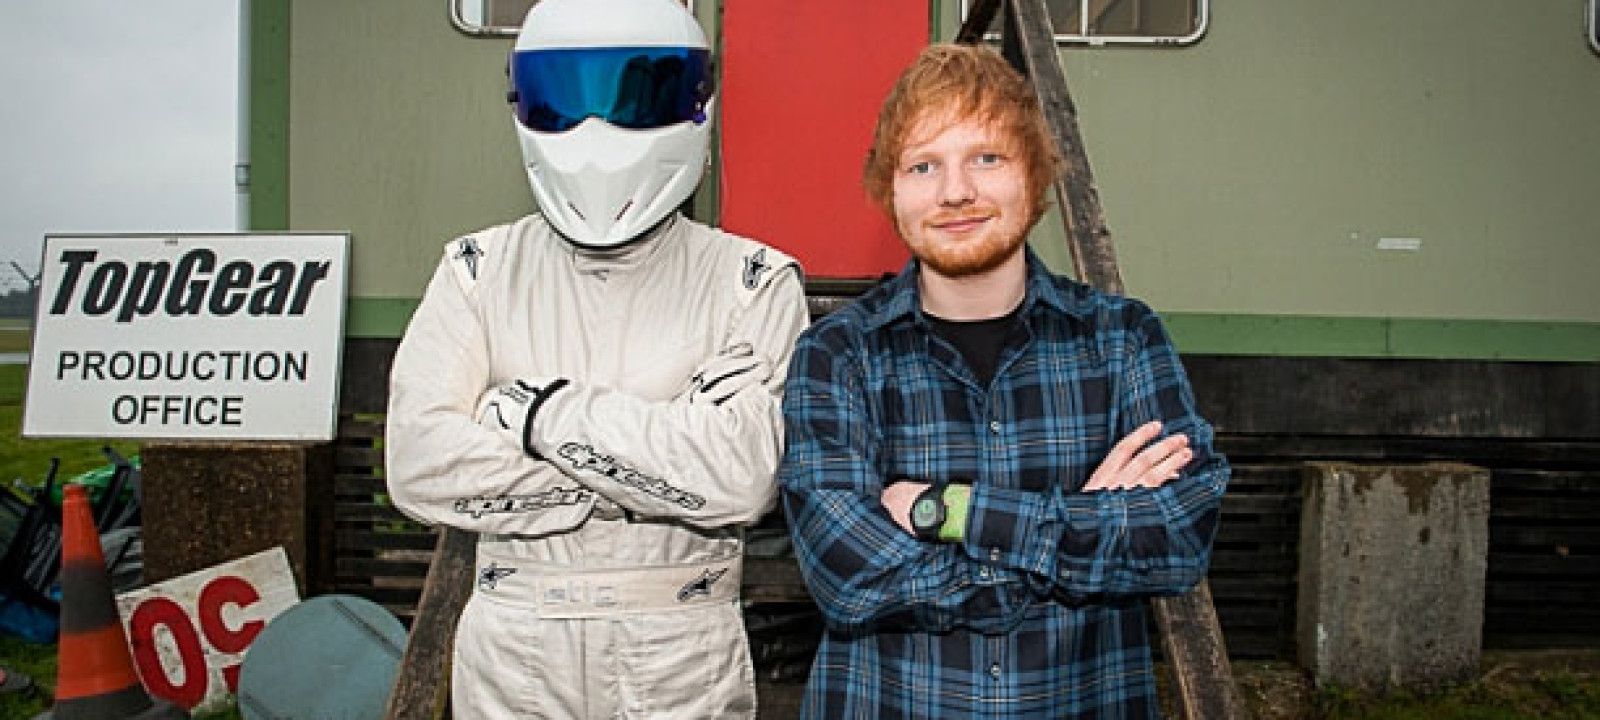 ed sheeran s first driving lesson with the stig anglophenia bbc america. Black Bedroom Furniture Sets. Home Design Ideas